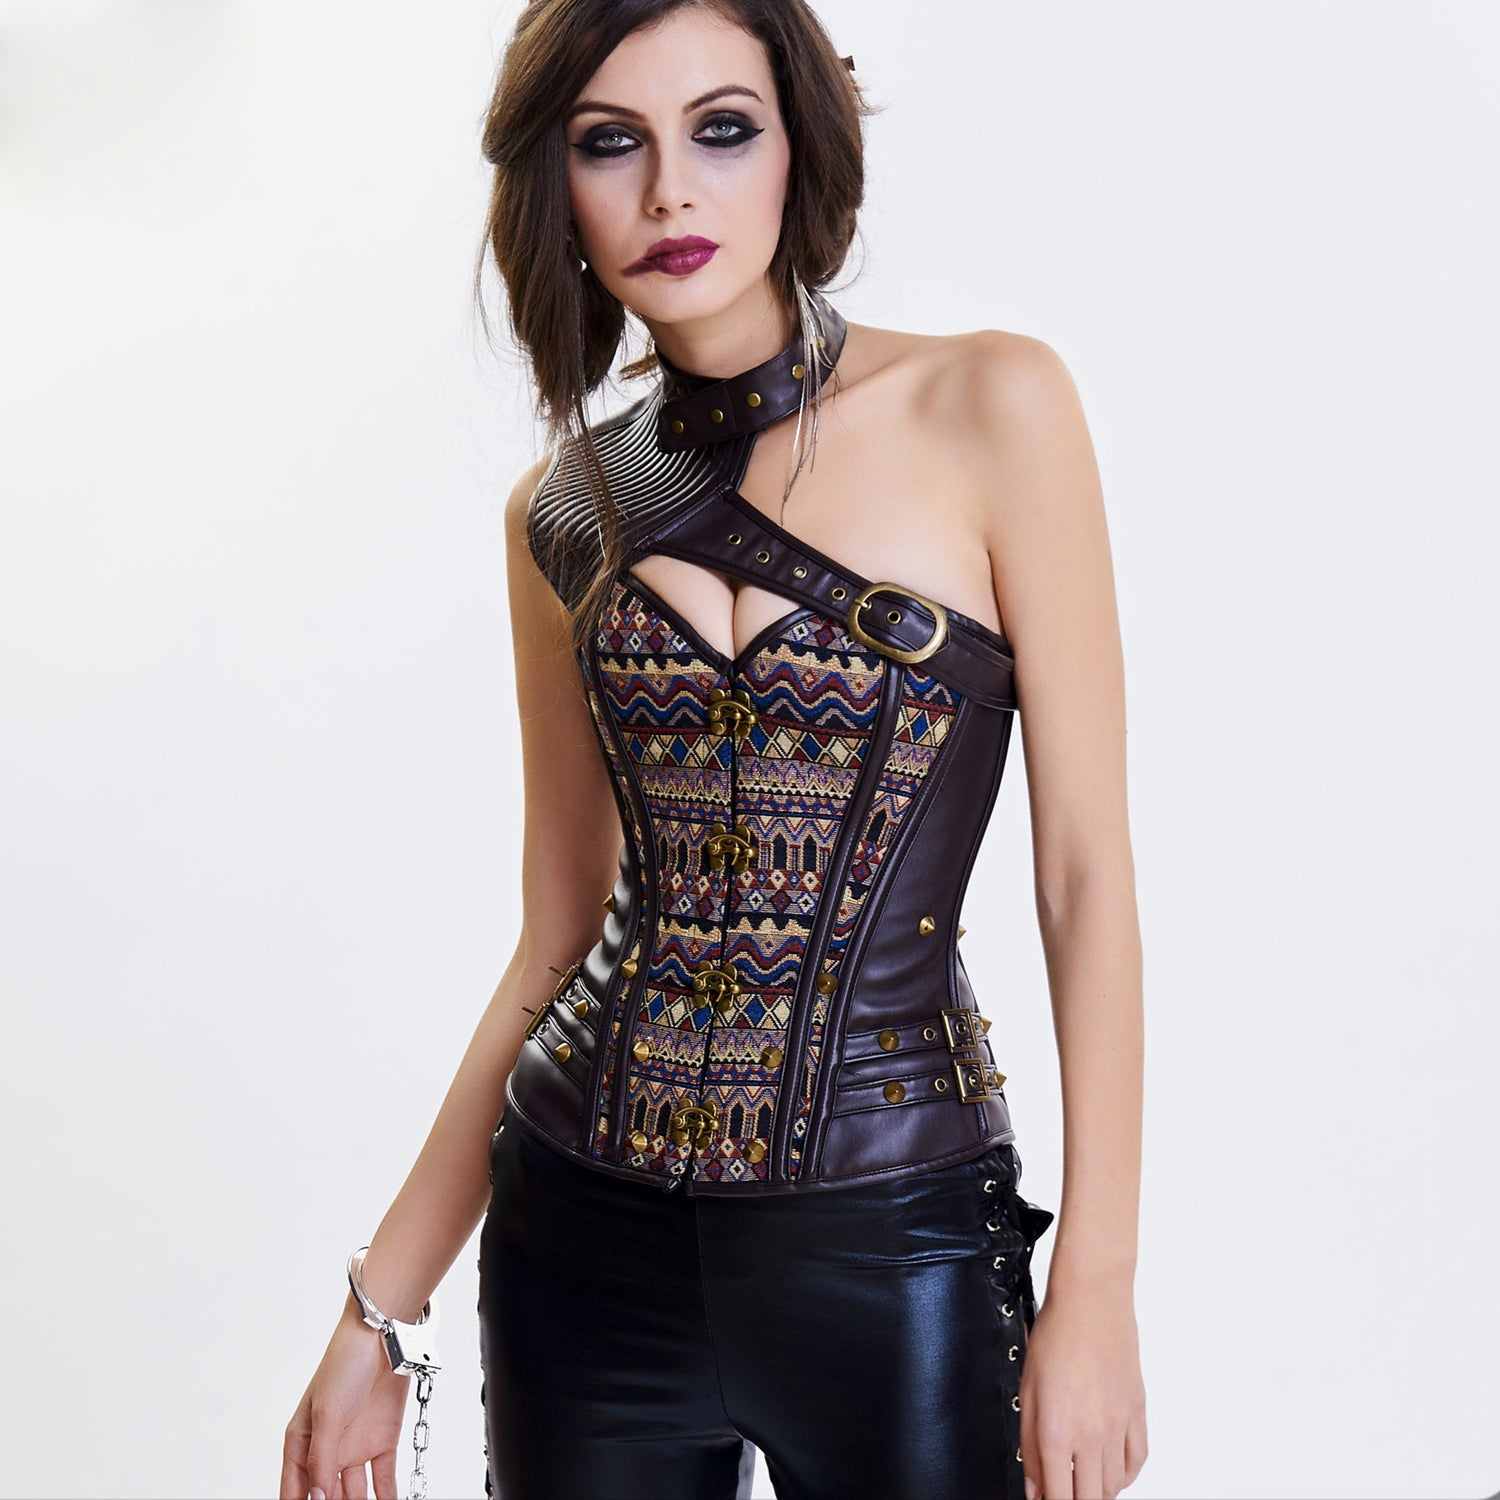 Corsets are suitable for armor 100